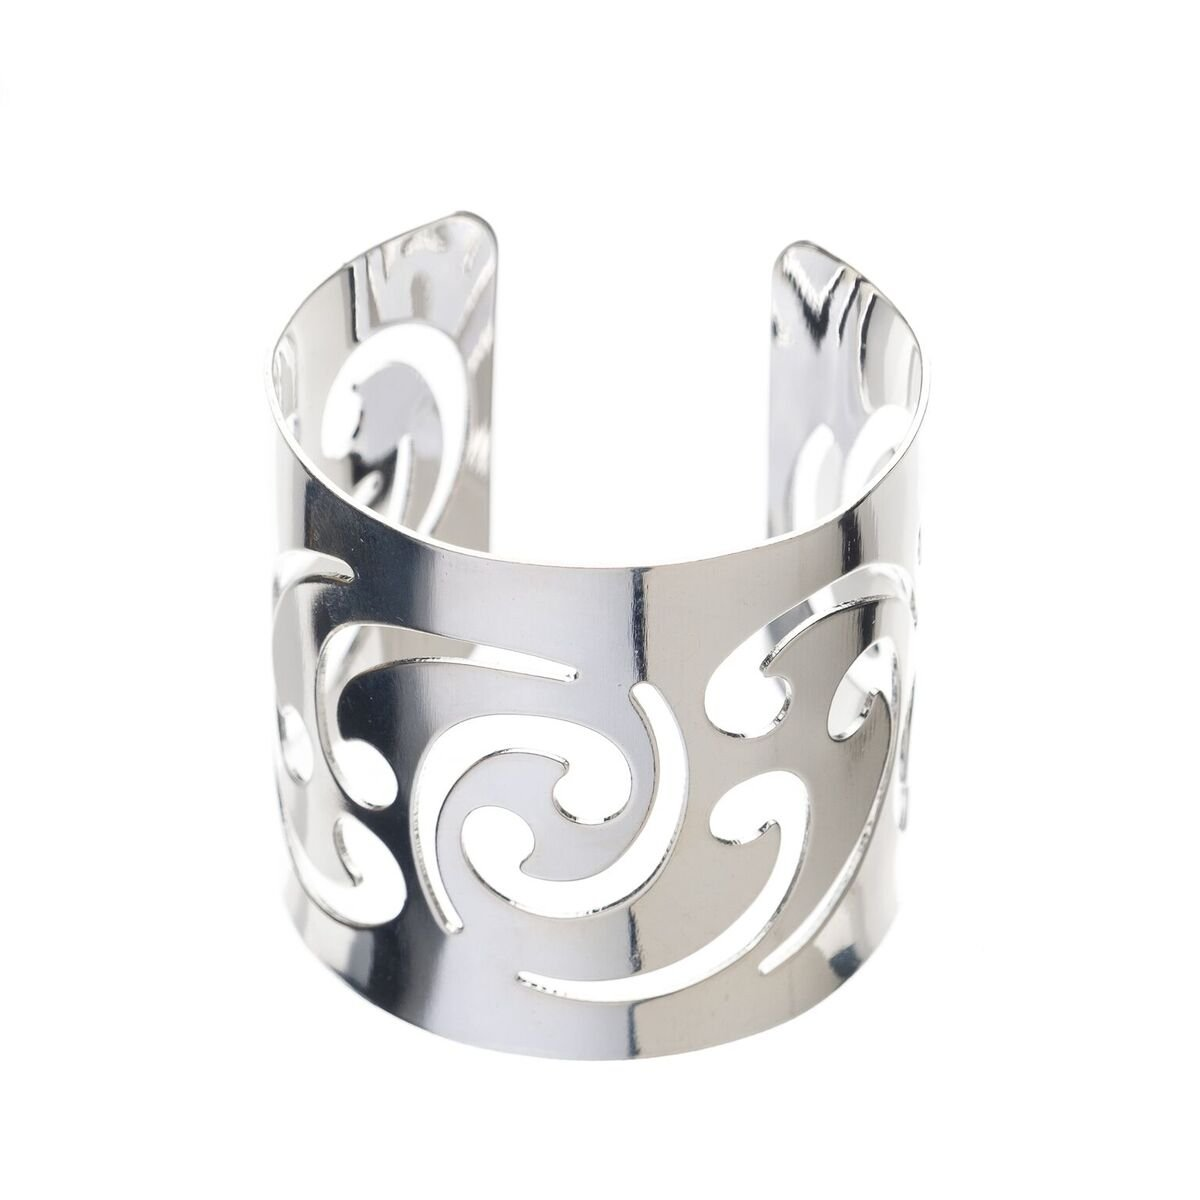 Ella Celebration Metal Swirl Napkin Ring Holders, Napkin Rings for Weddings, Silver Set of 12 (Silver)